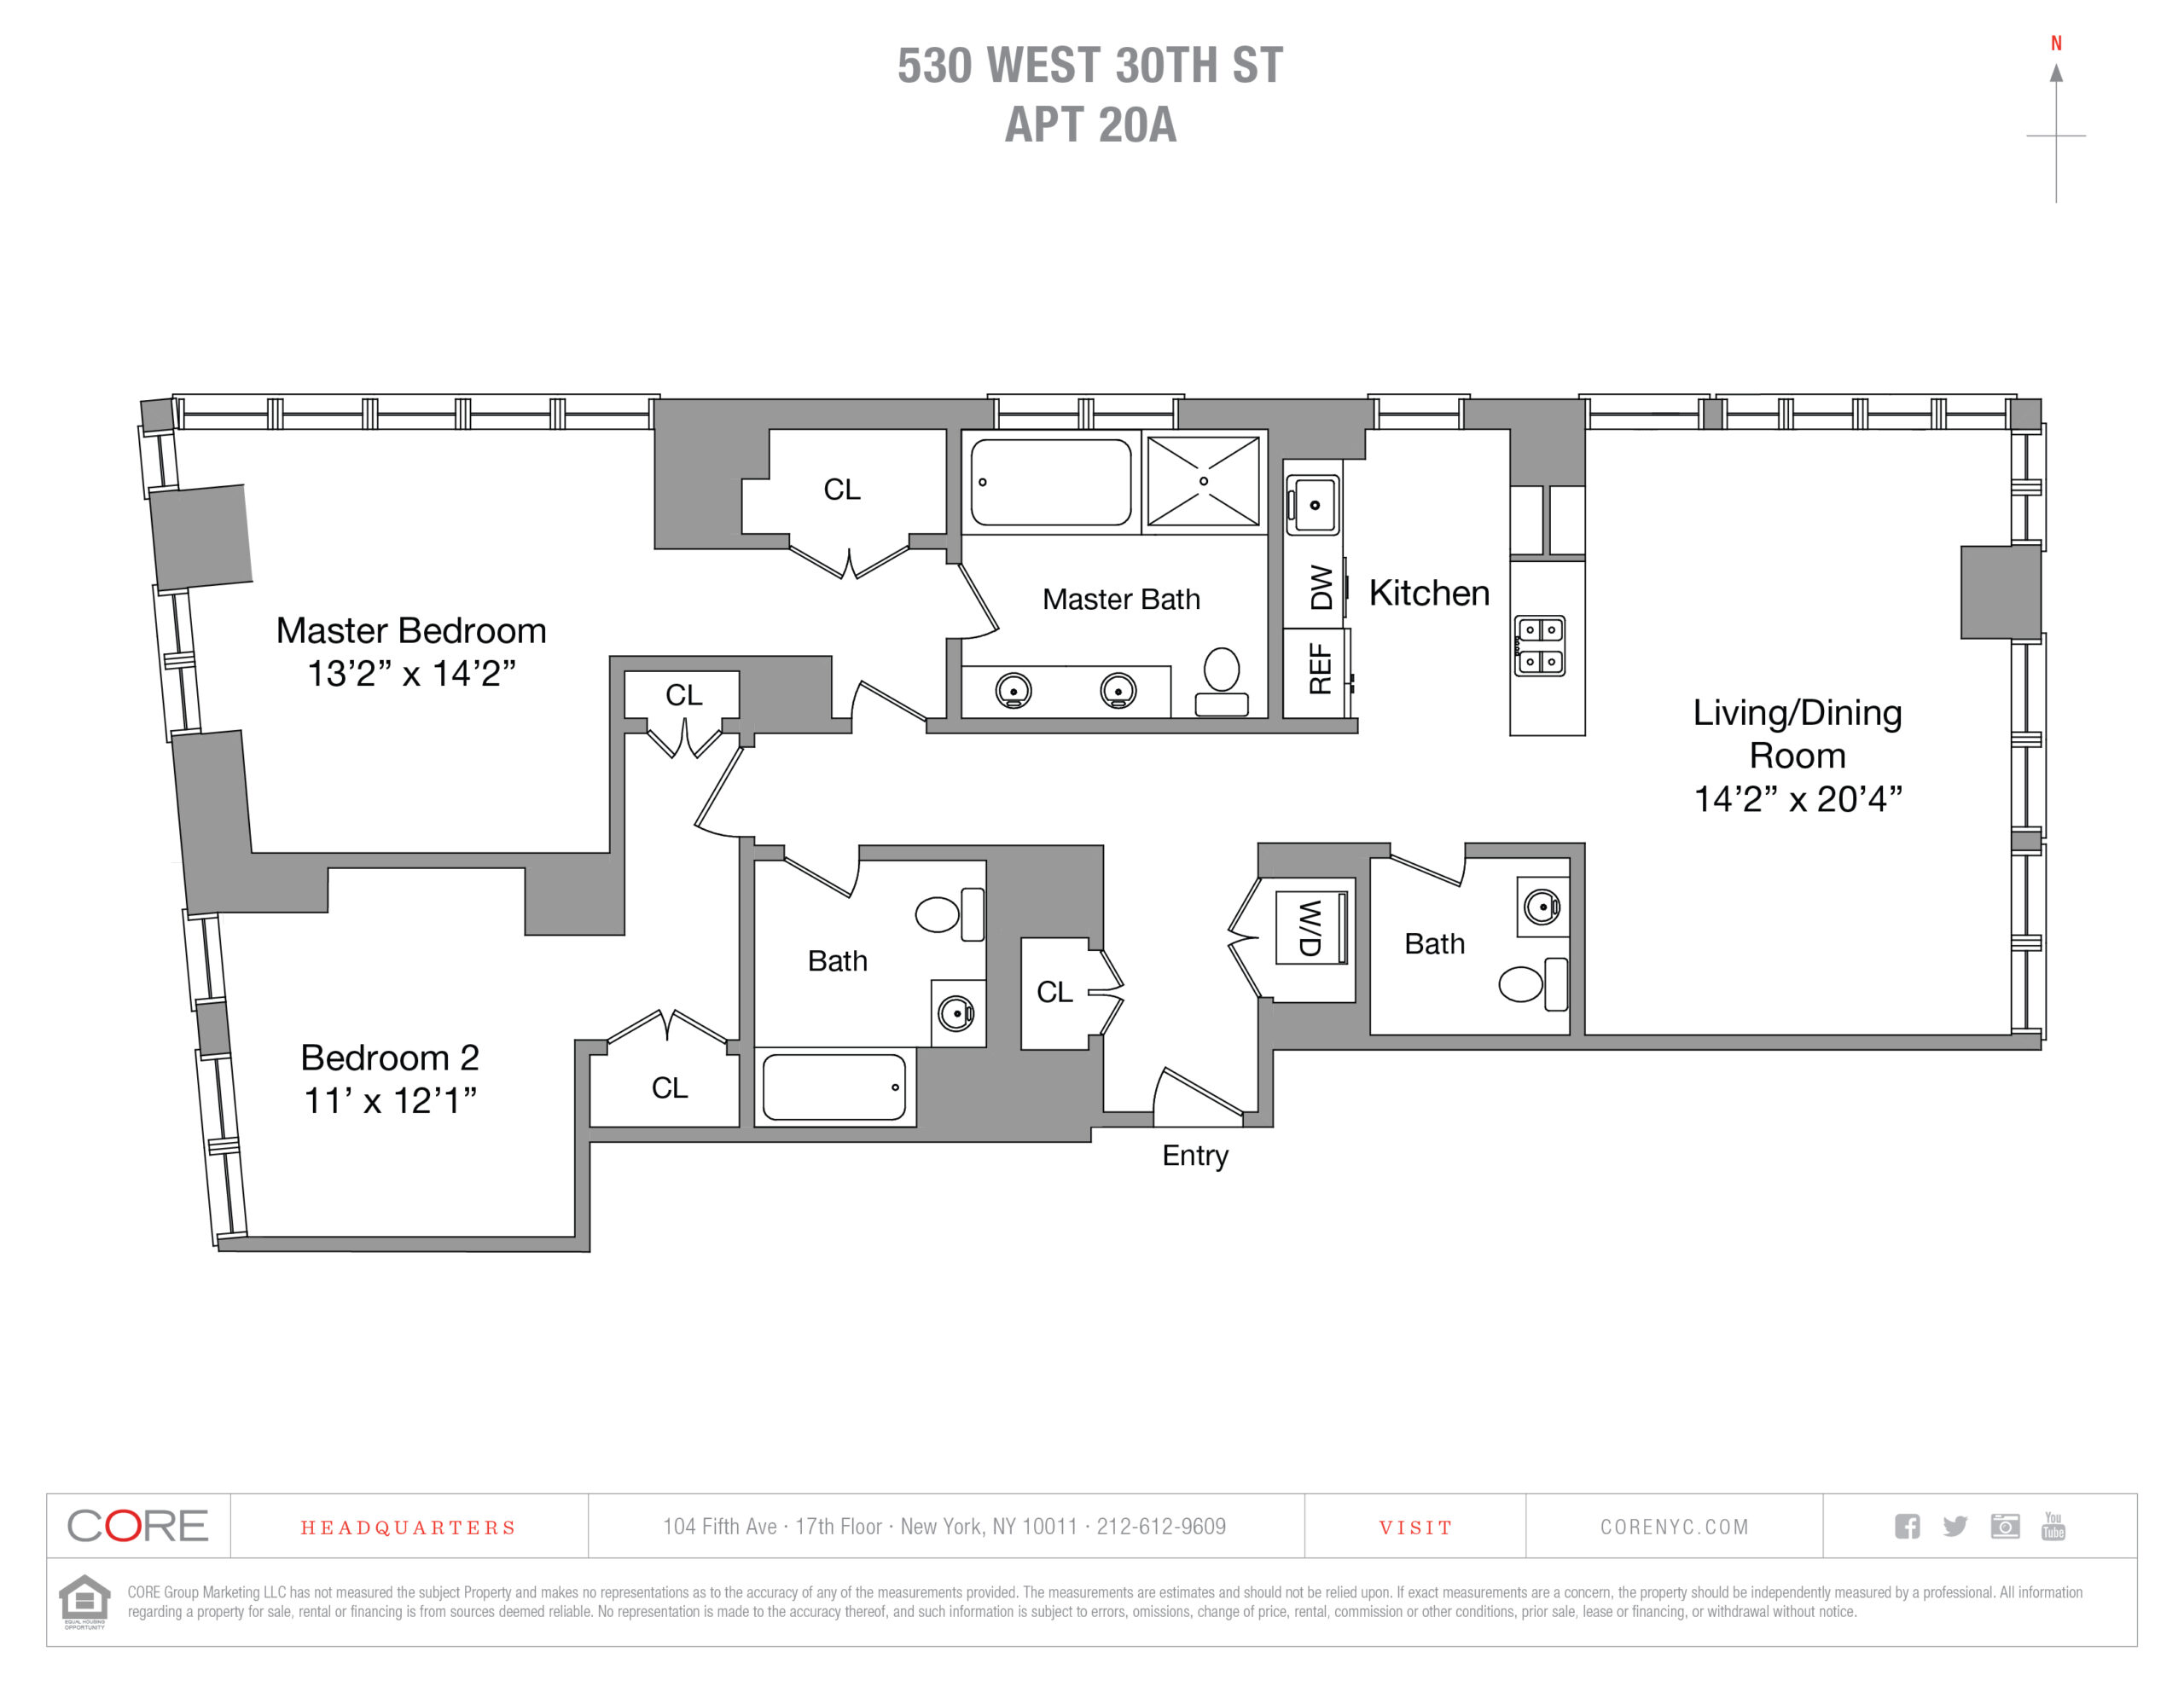 530 West 30th St. 20A, New York, NY 10001